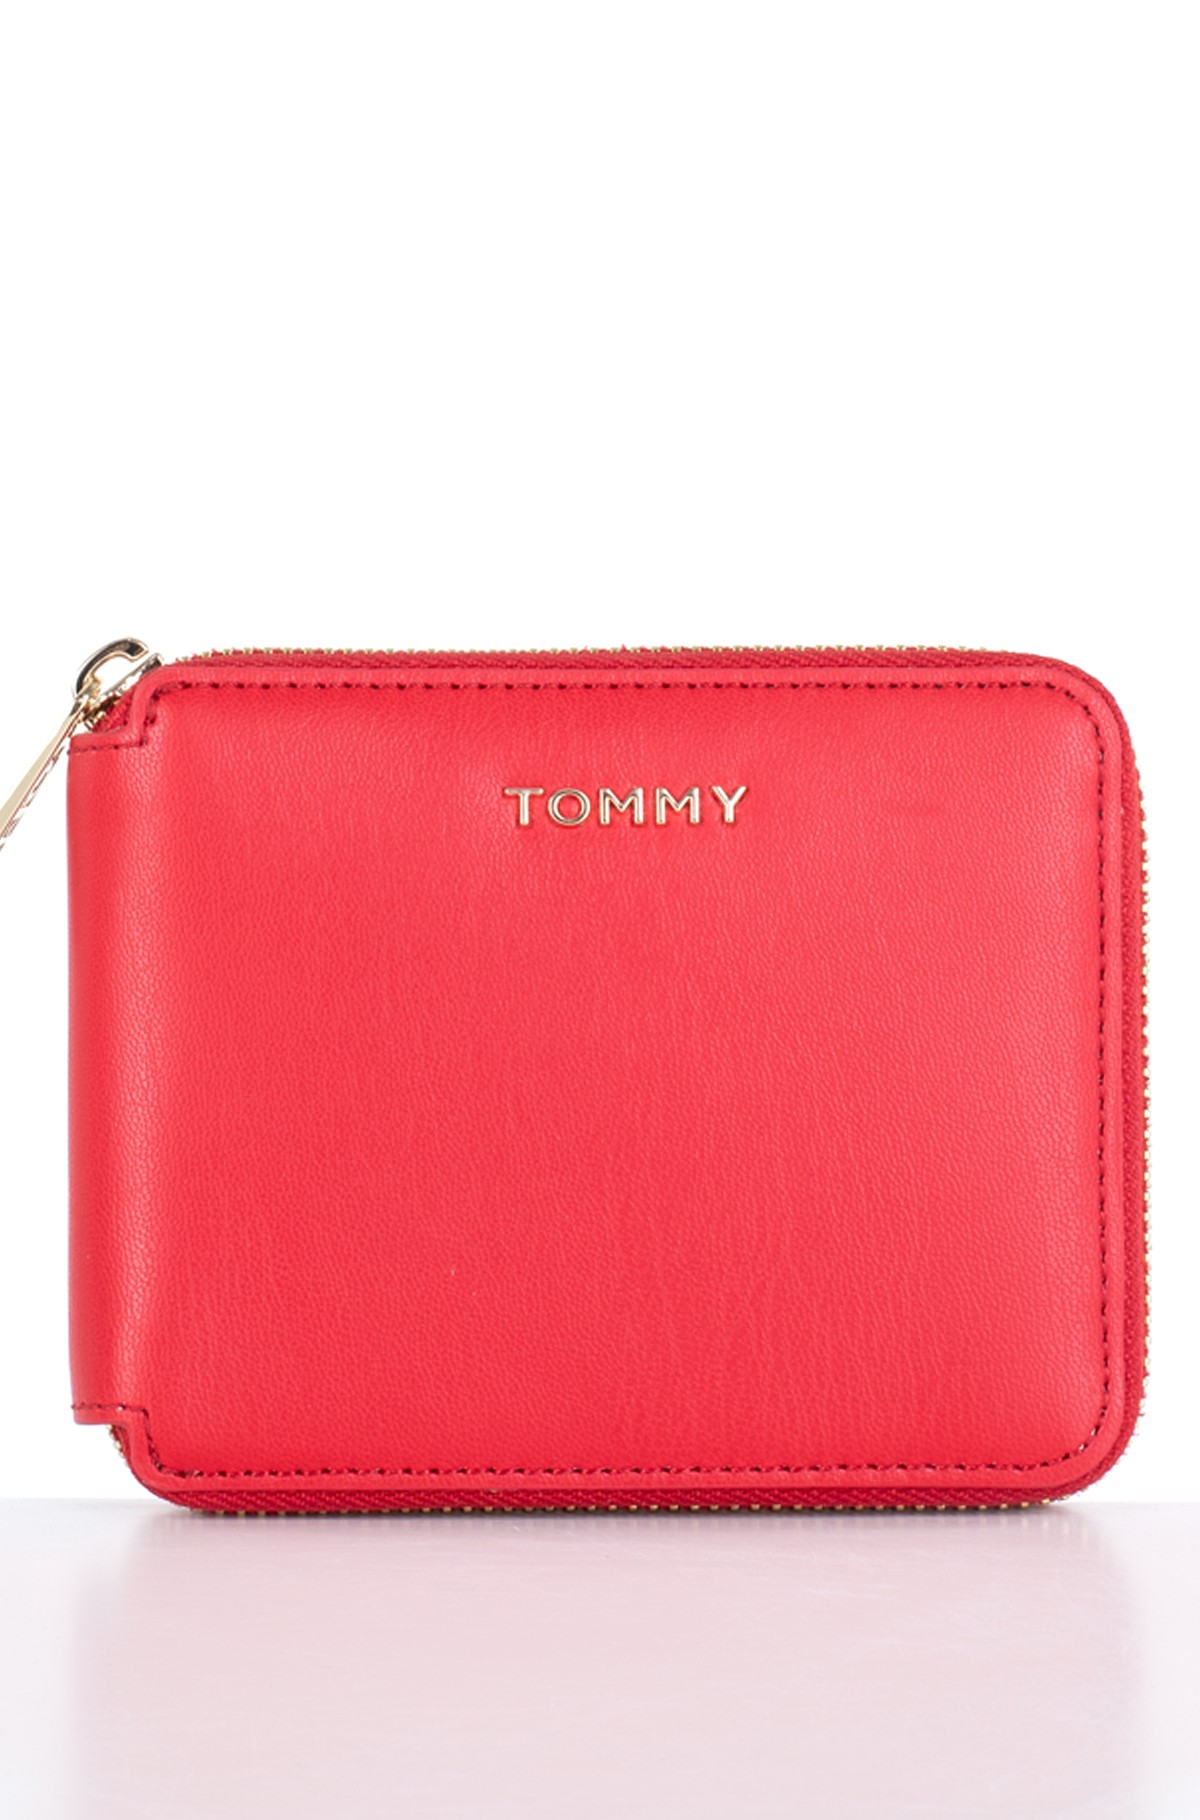 Wallet ICONIC TOMMY MED ZA-full-1